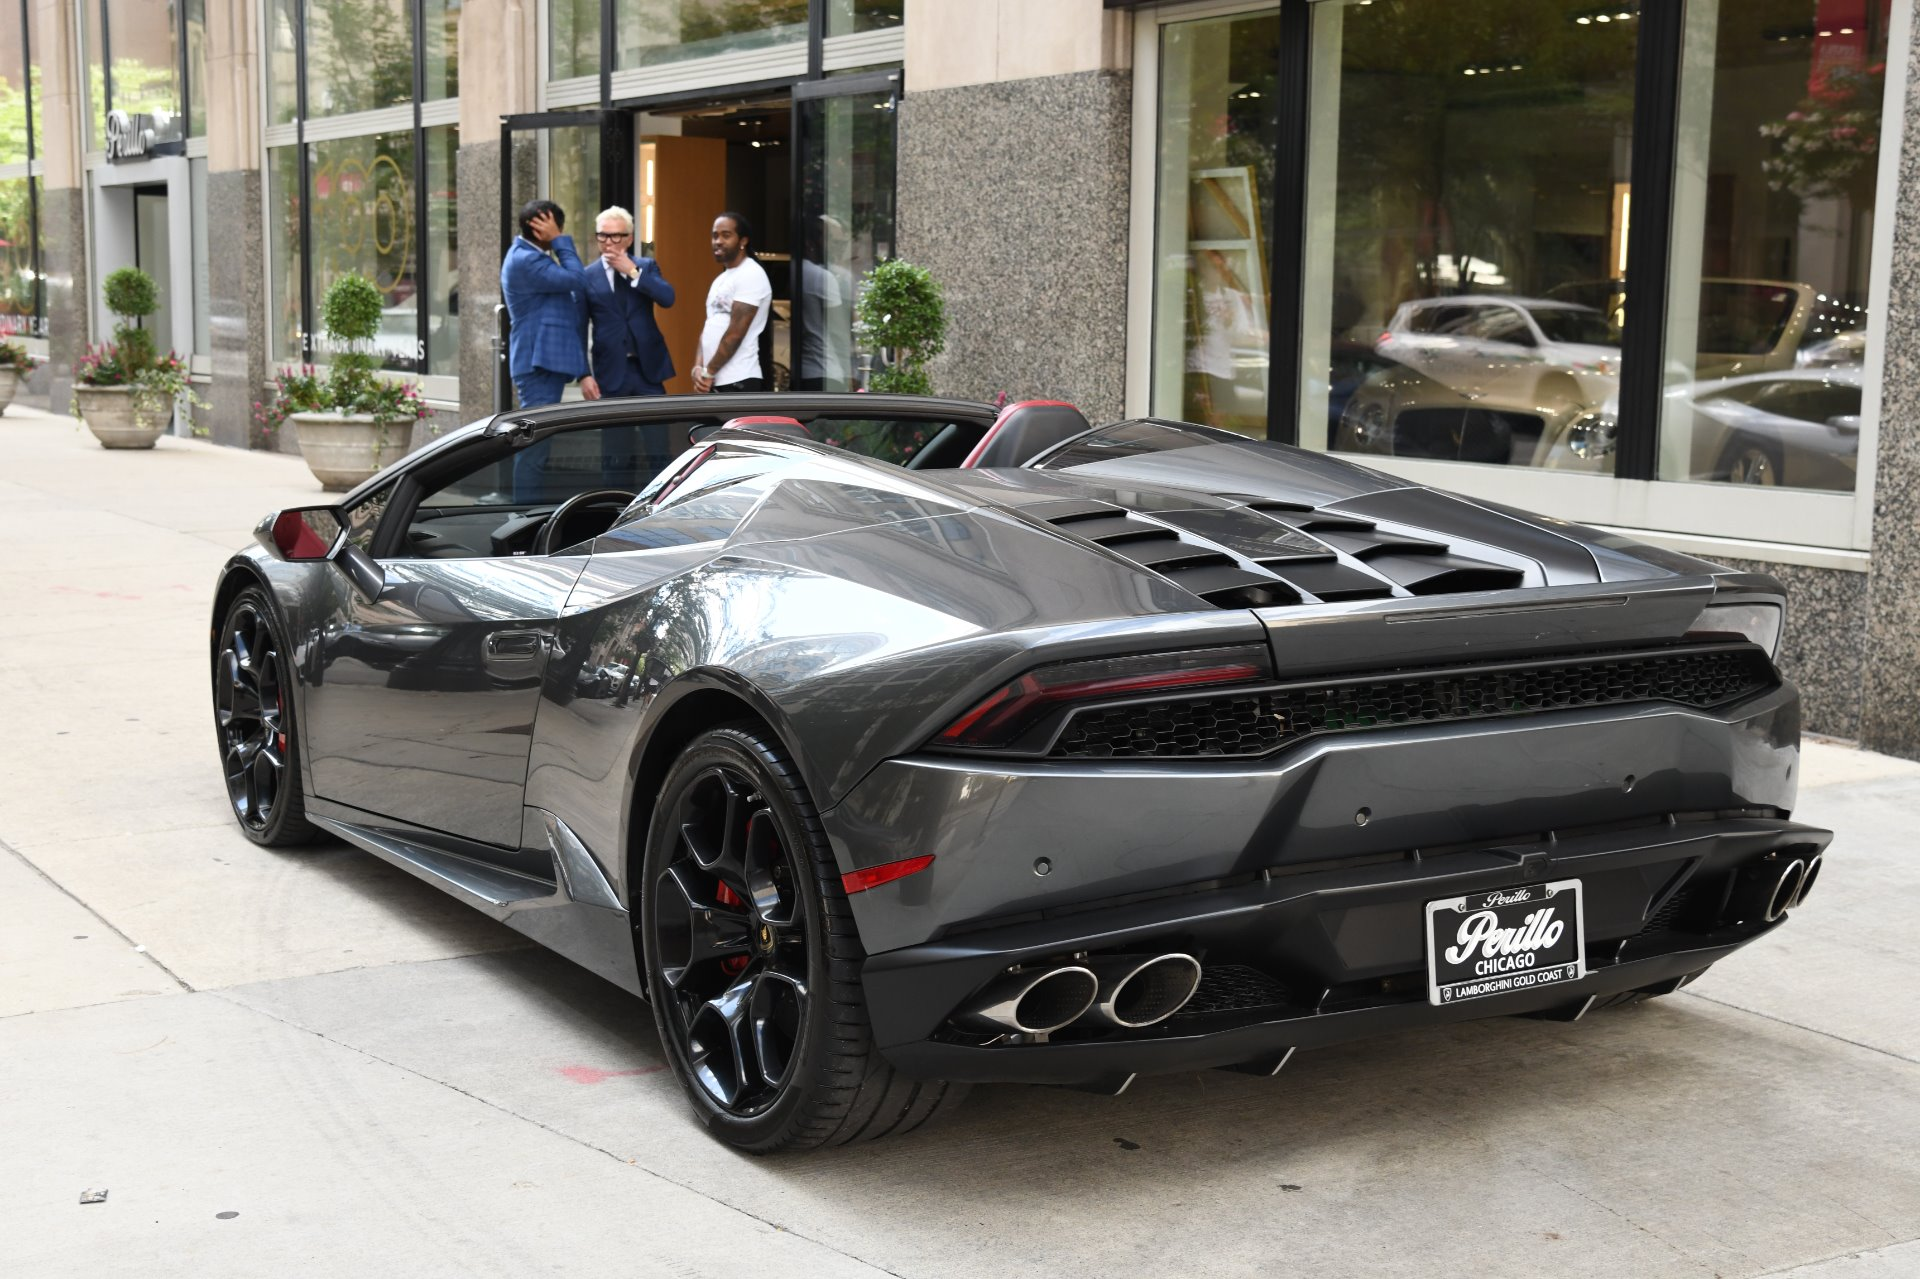 Used 2016 Lamborghini Huracan Spyder LP 610-4 Spyder  Certified Pre-Owned | Chicago, IL